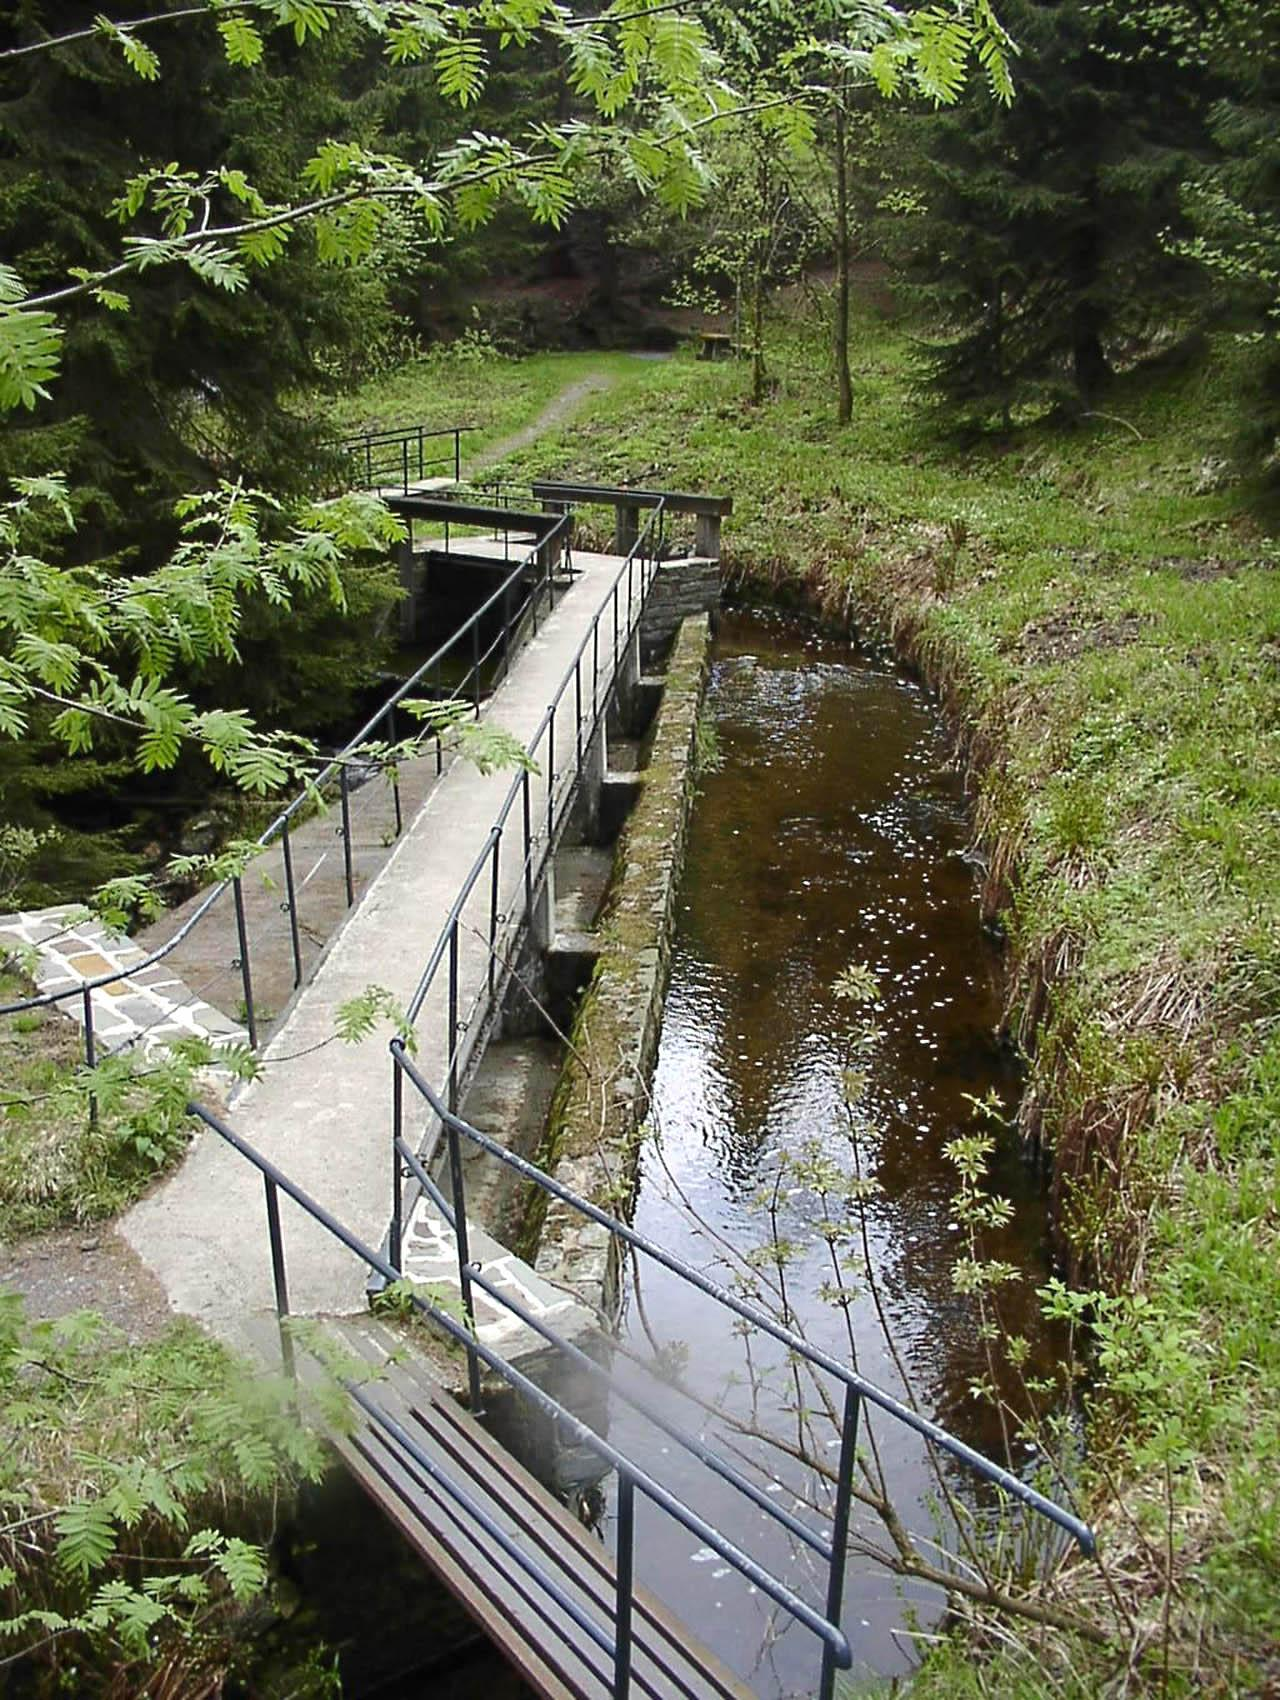 The mining operations were powered by a vast hydrologic engineering system throughout the landscape – © Harzwasserwerke GmbH